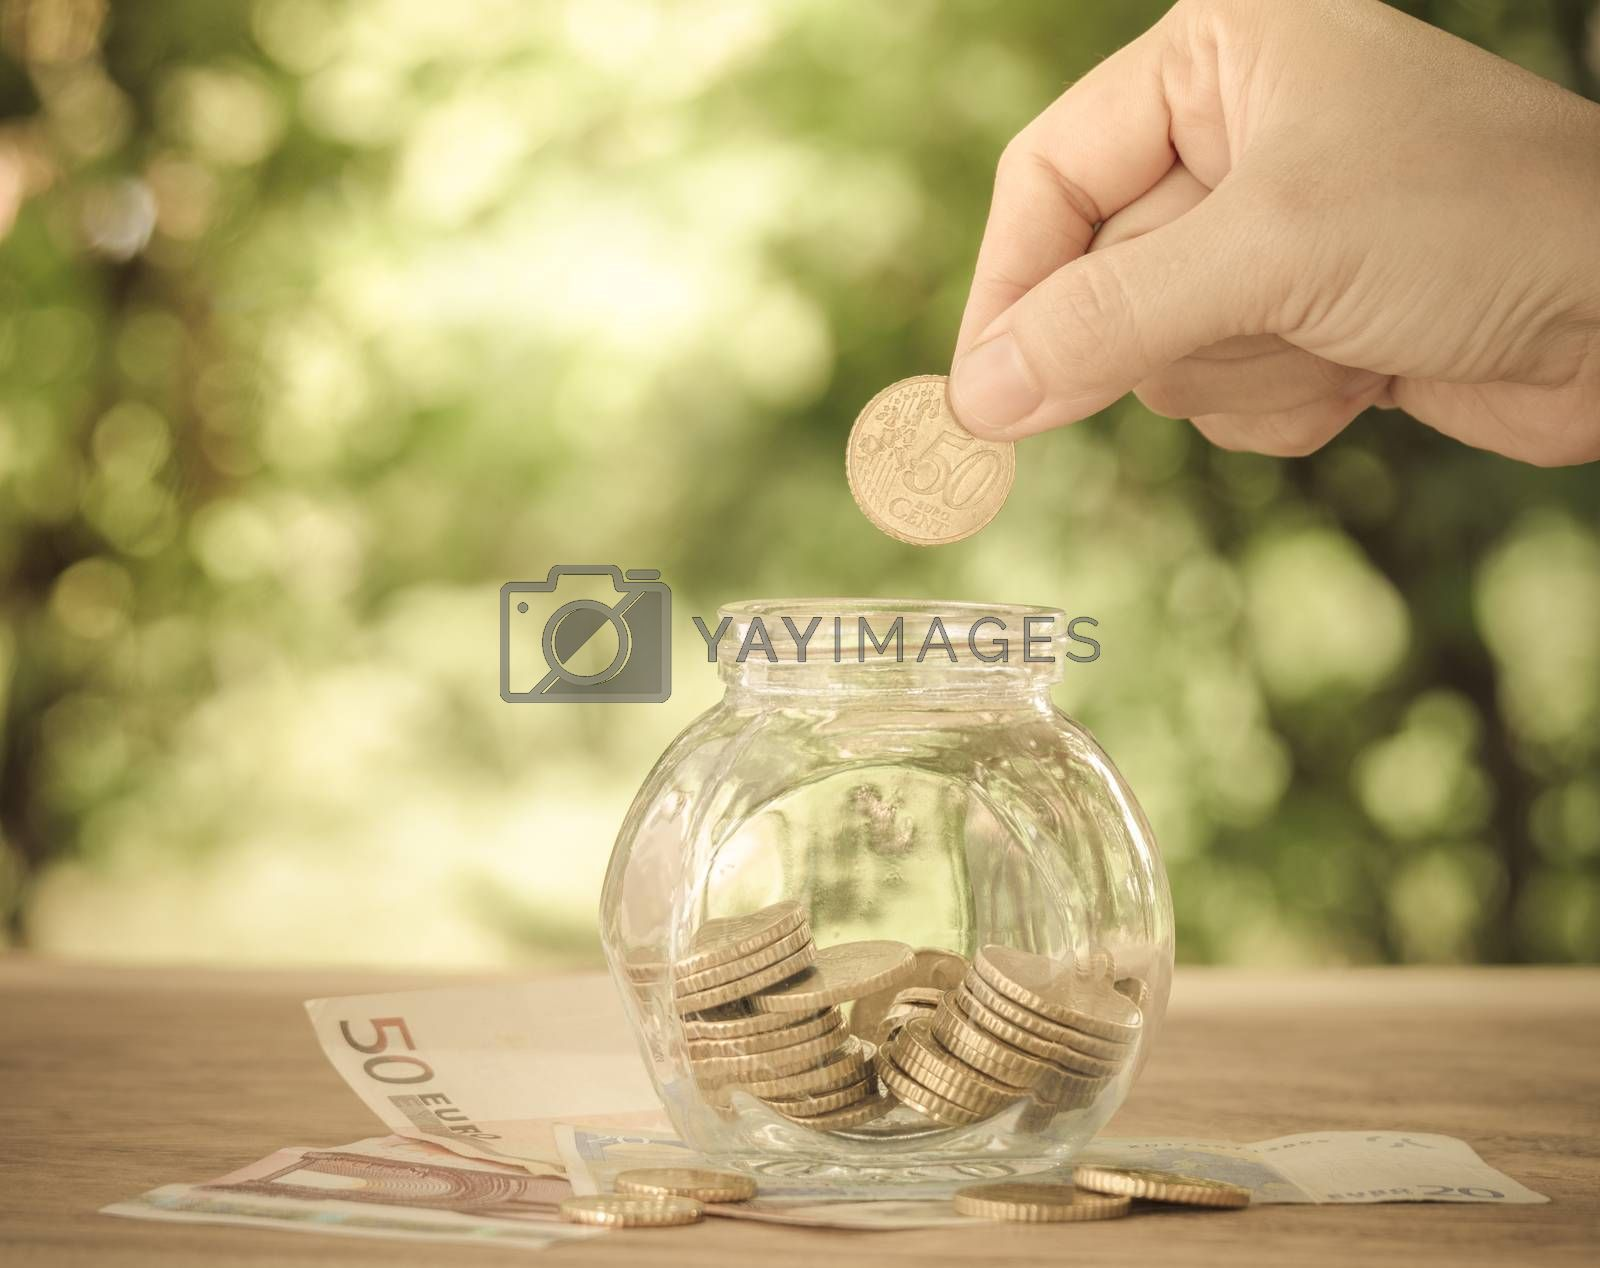 hand's women putting golden coin in money jar. account concept,business concept,finance concept. vintage style.